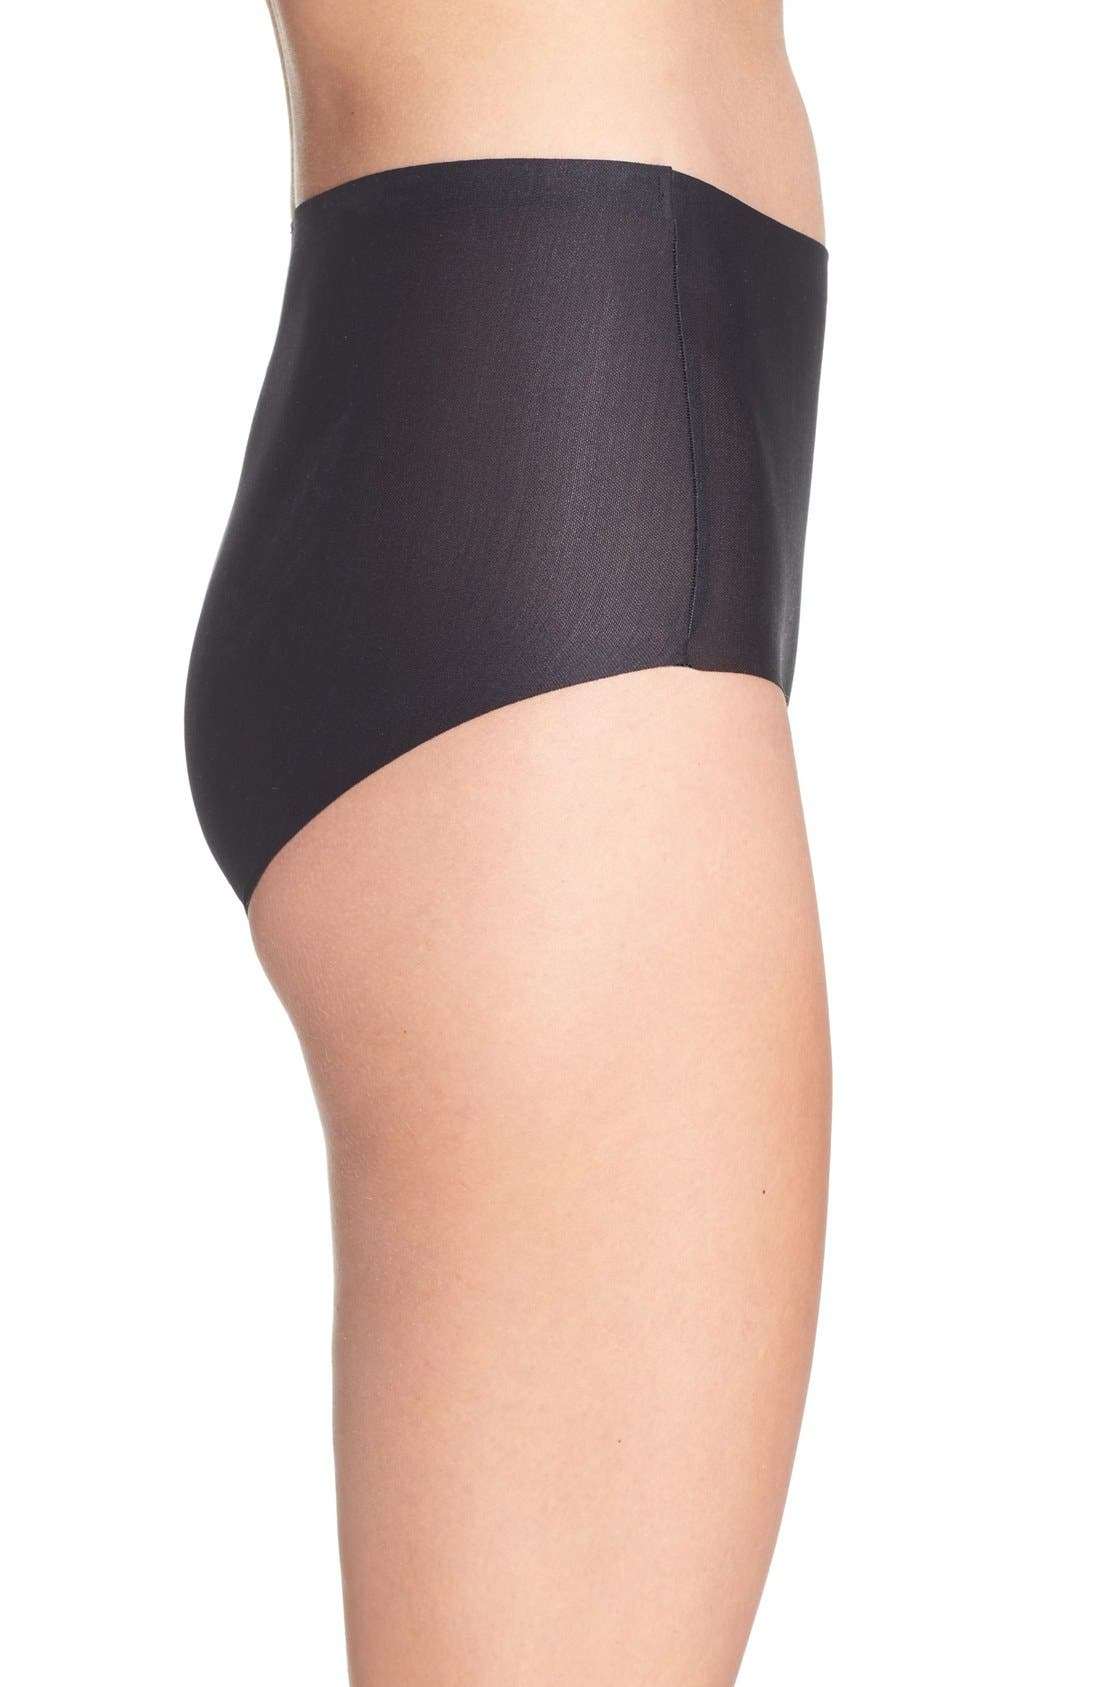 High Waist Smoothing Briefs,                             Alternate thumbnail 4, color,                             BLACK